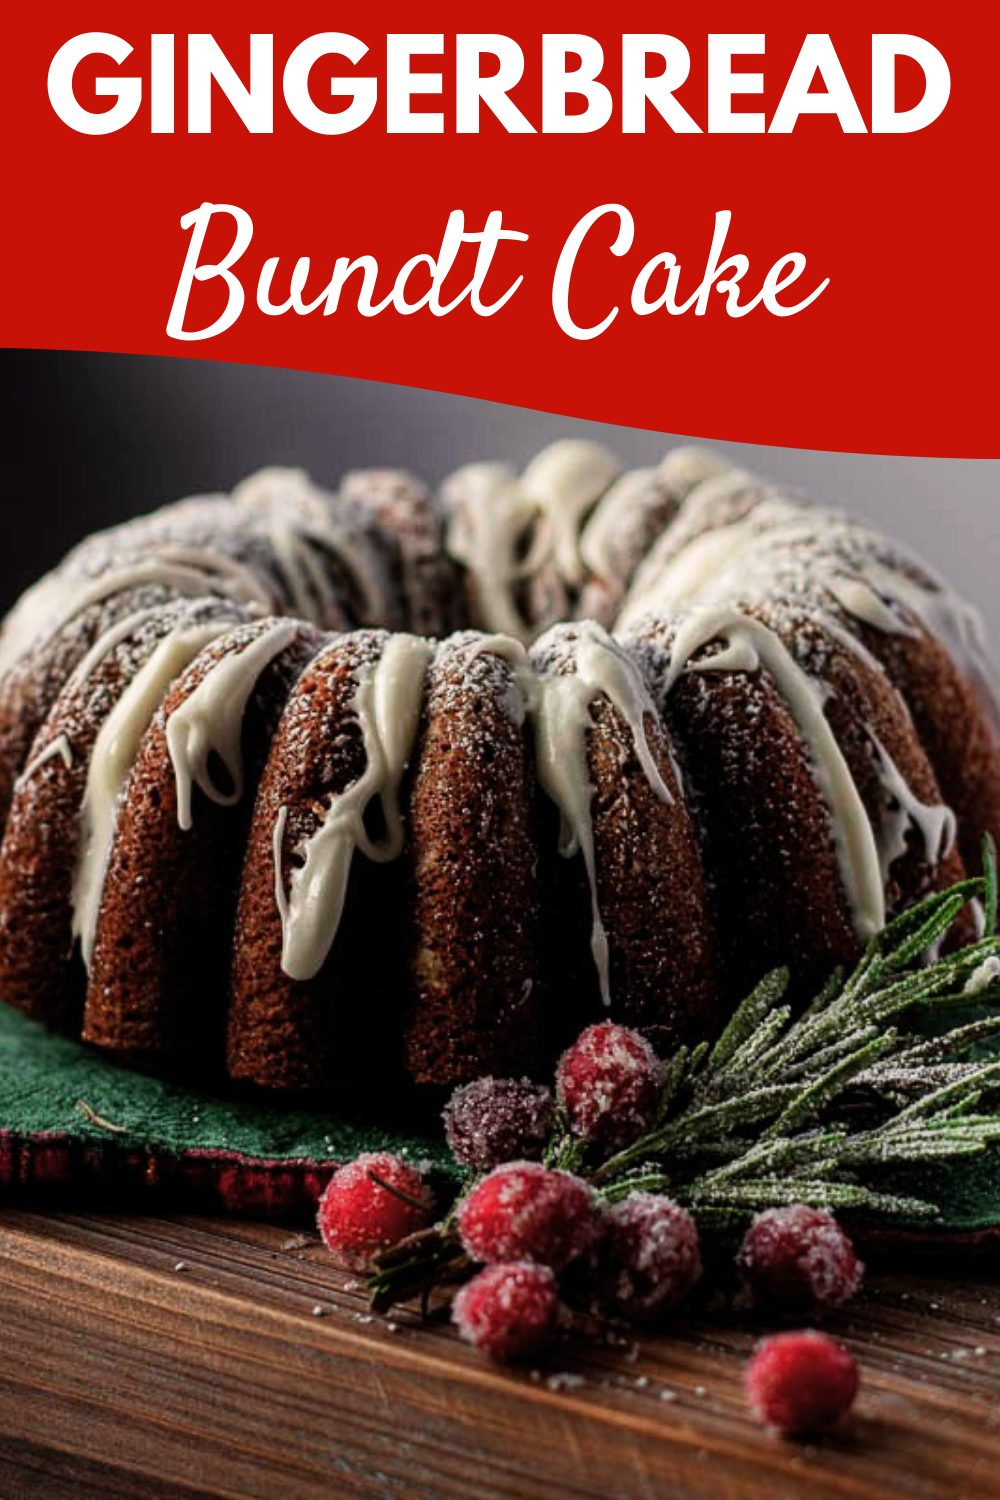 This spiced gingerbread bundt cake is everything that the holidays promise: soft cake texture, spiced ginger flavor, and a touch of orange. Full recipe and tips available on our site! via @jennymelrose